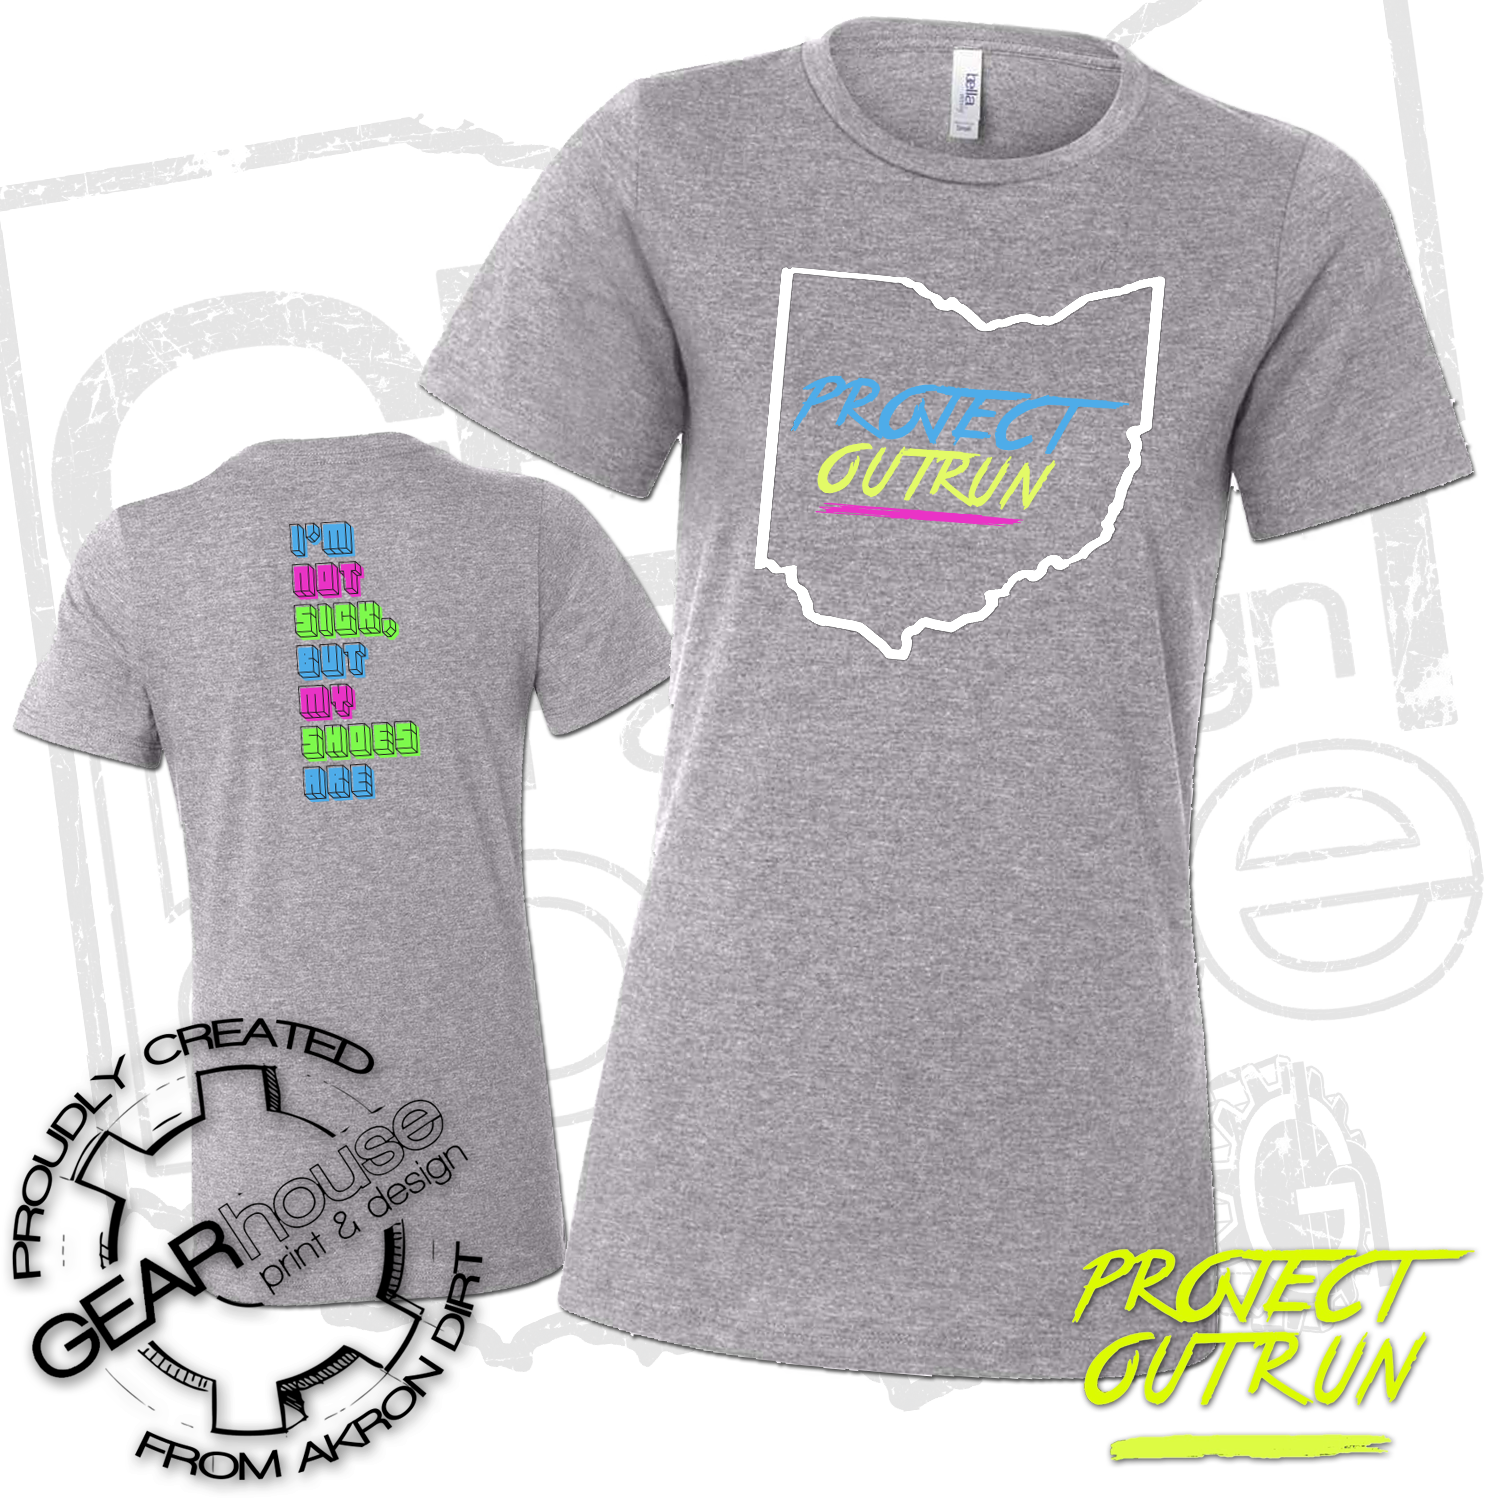 Project Outrun Women's Ohio Tee